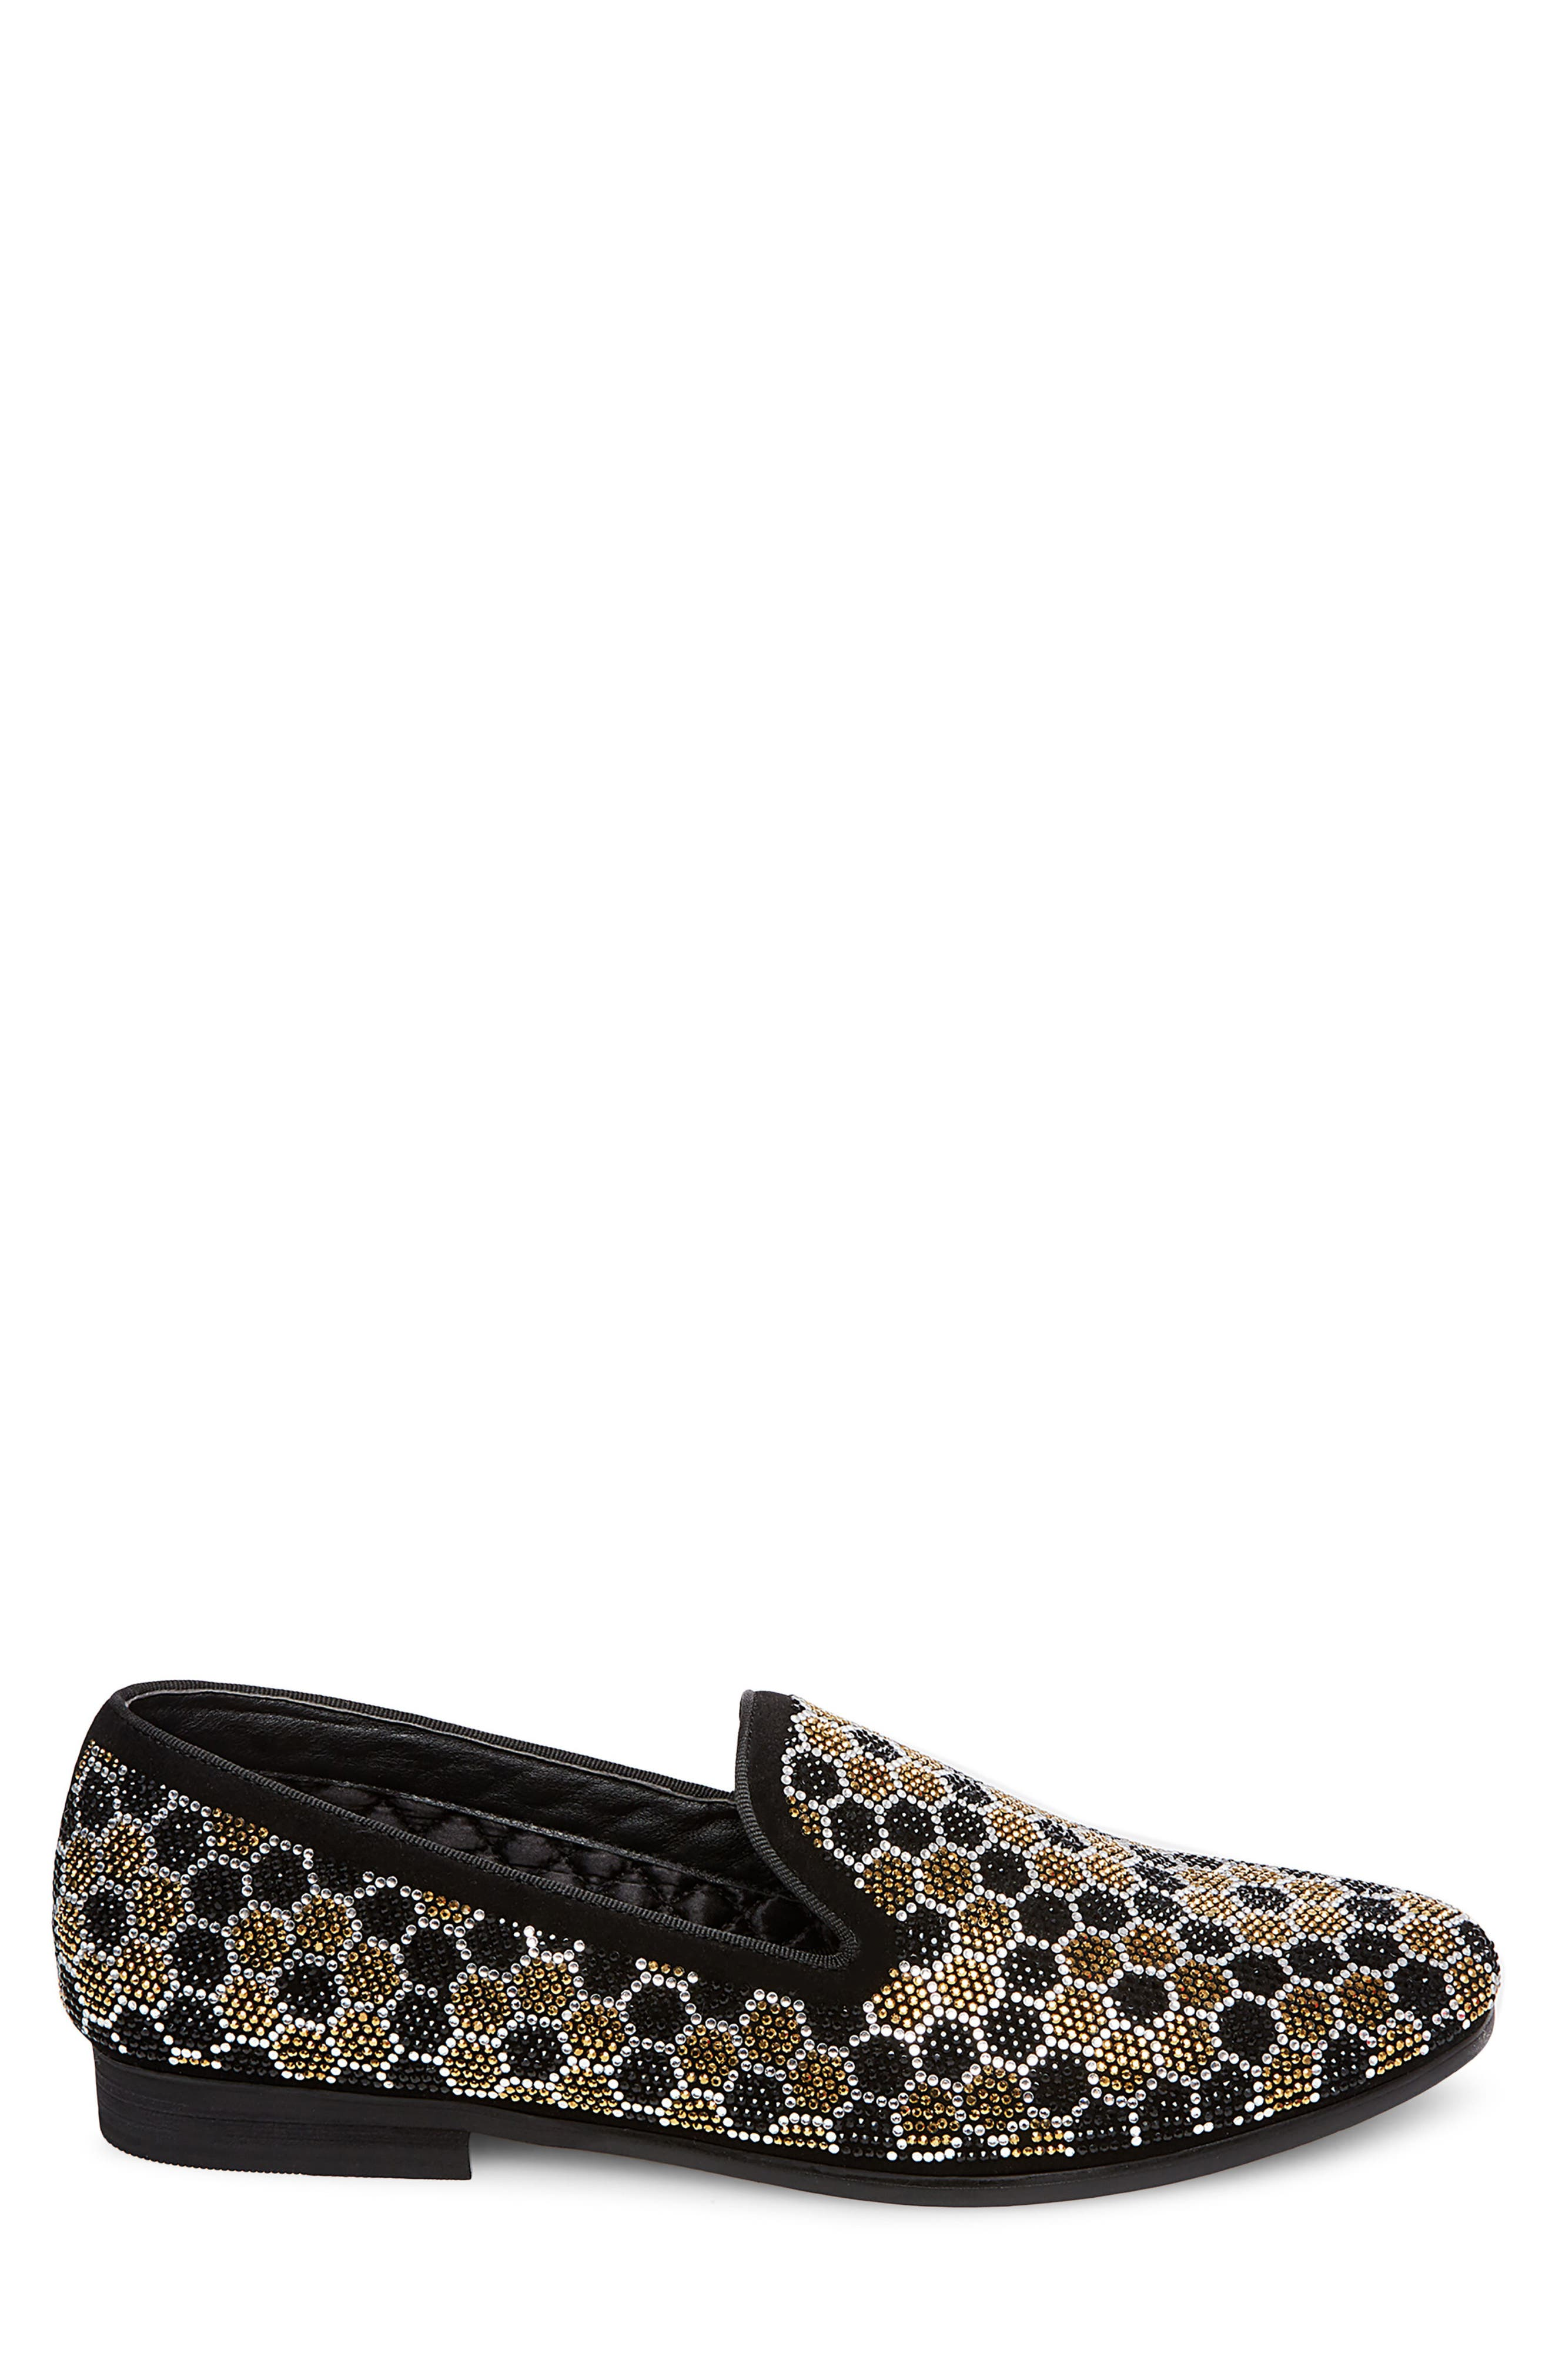 Caspian Studded Venetian Loafer,                             Alternate thumbnail 3, color,                             Black/ Gold